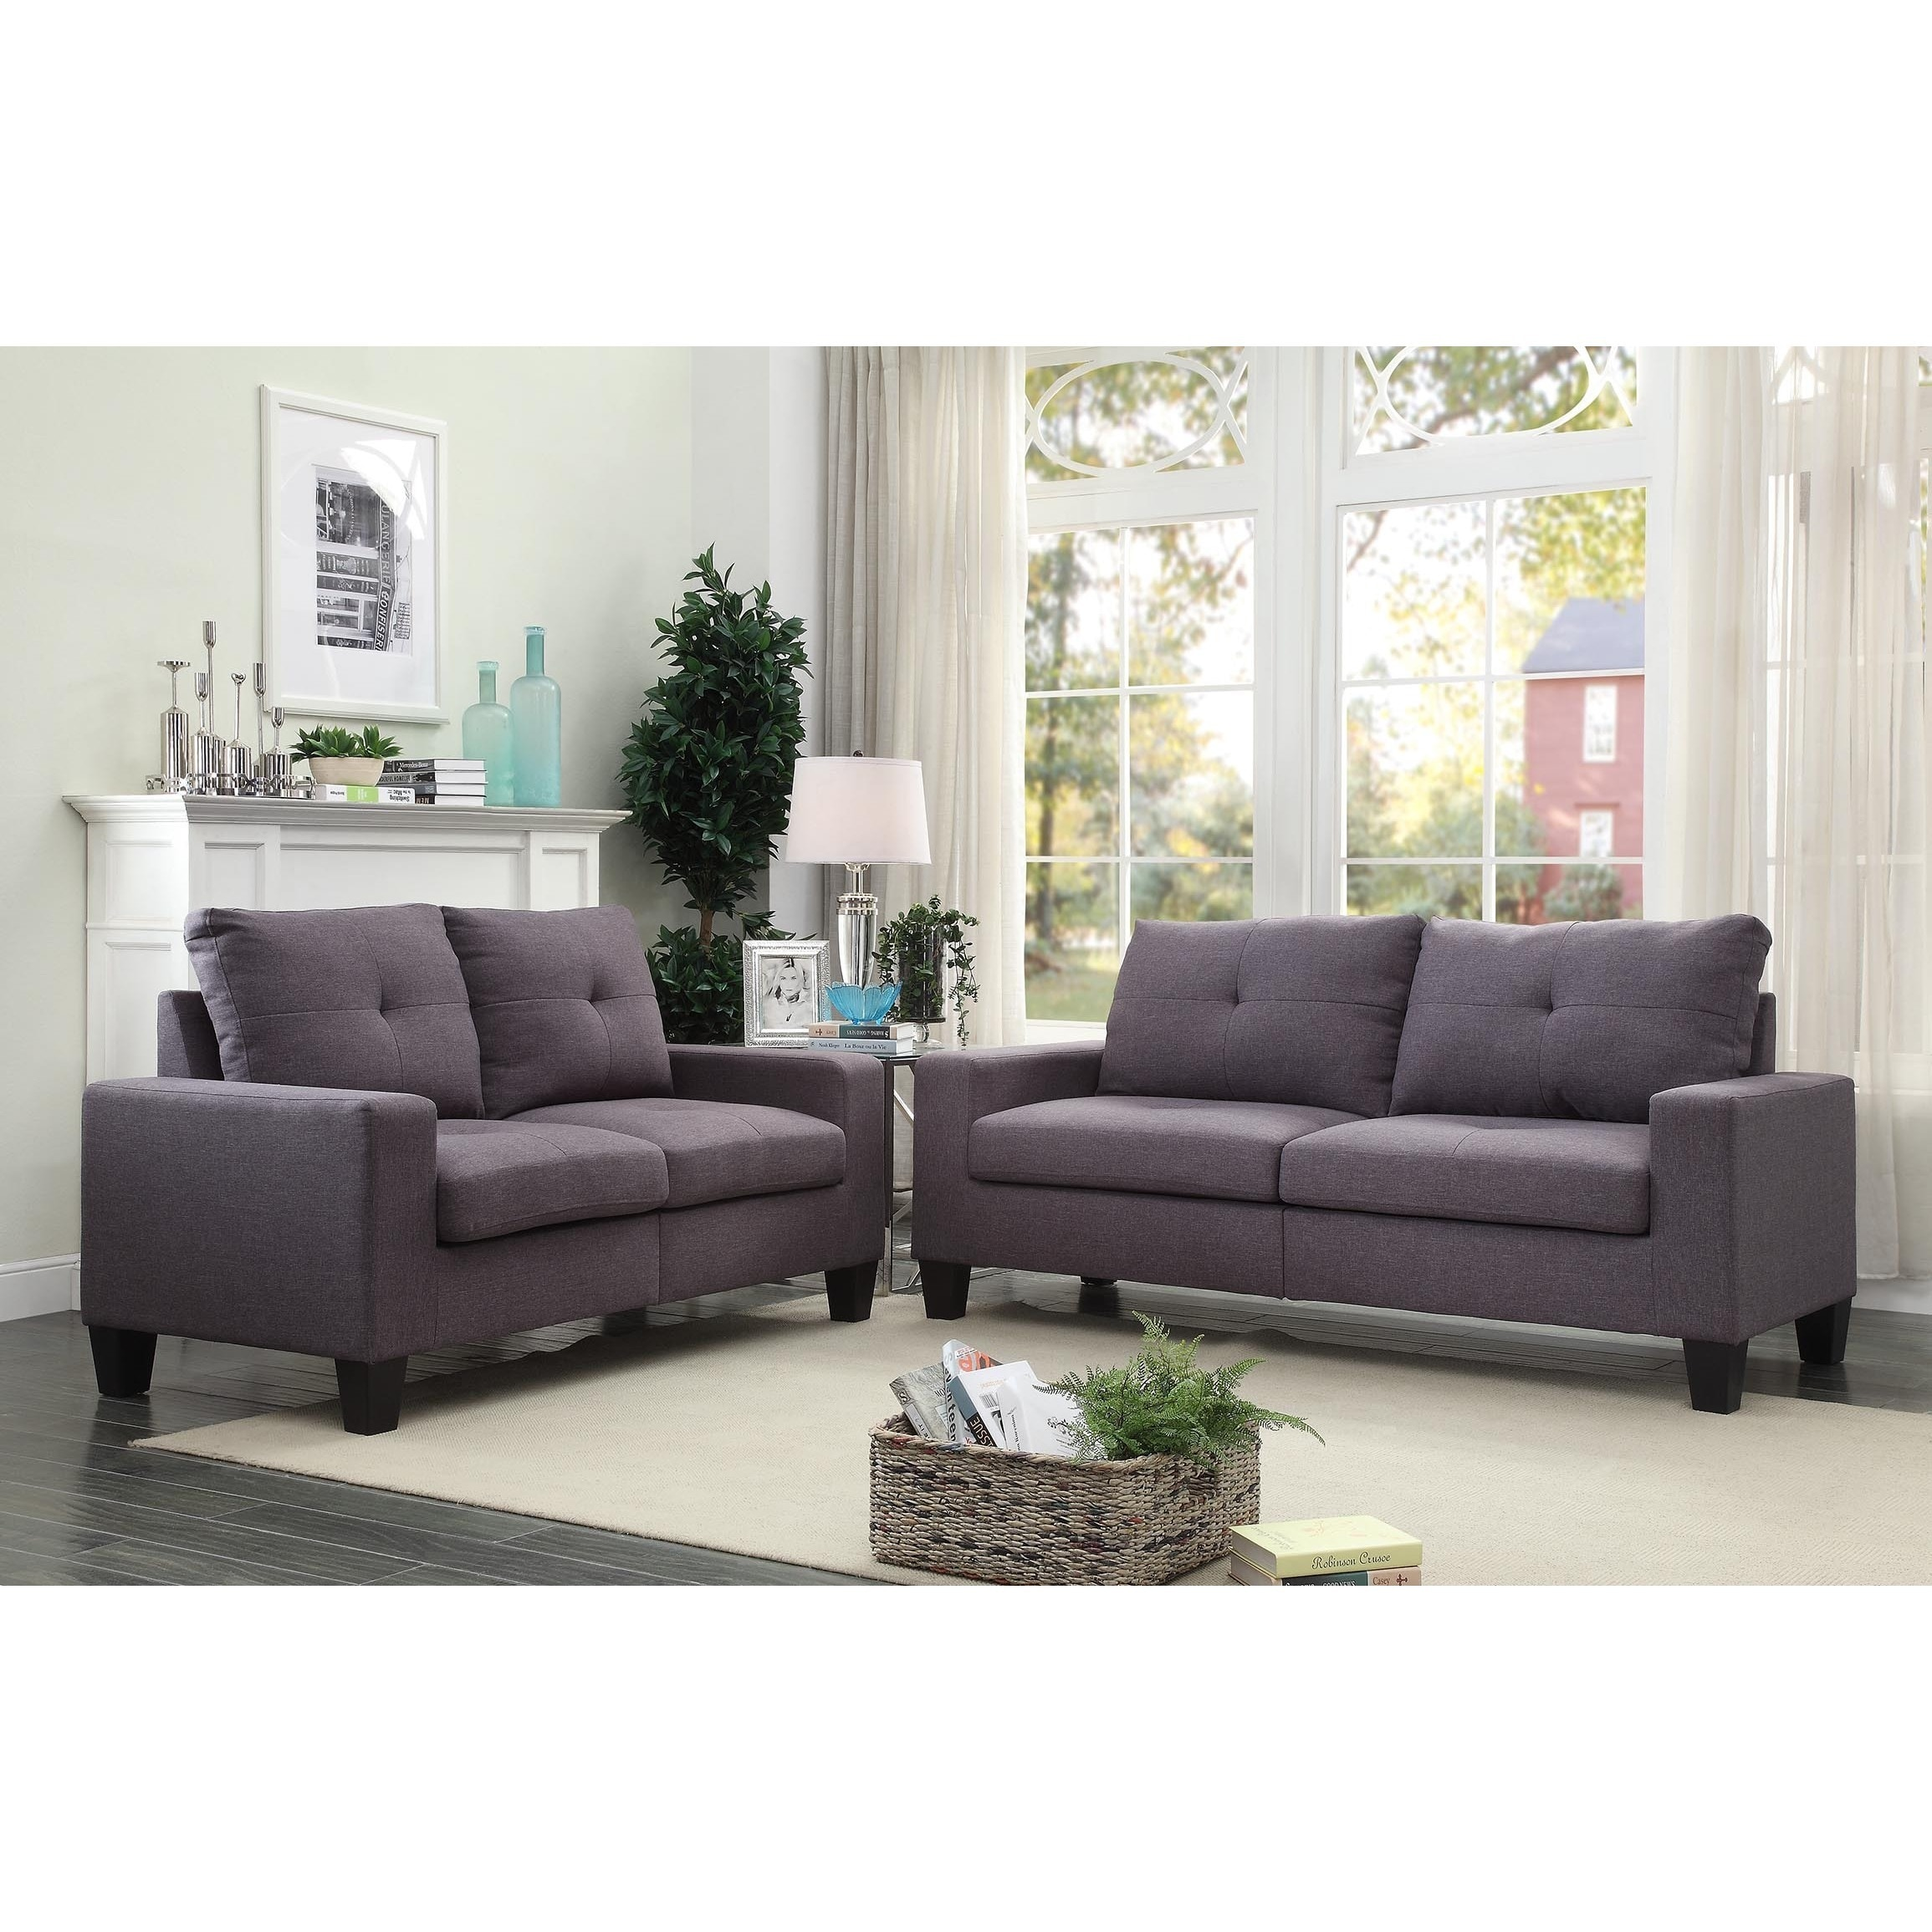 home product copper studio button tufted living room shipping garden grove and baxton muir modern overstock euthalia upholstered free contemporary today loveseat seater fabric